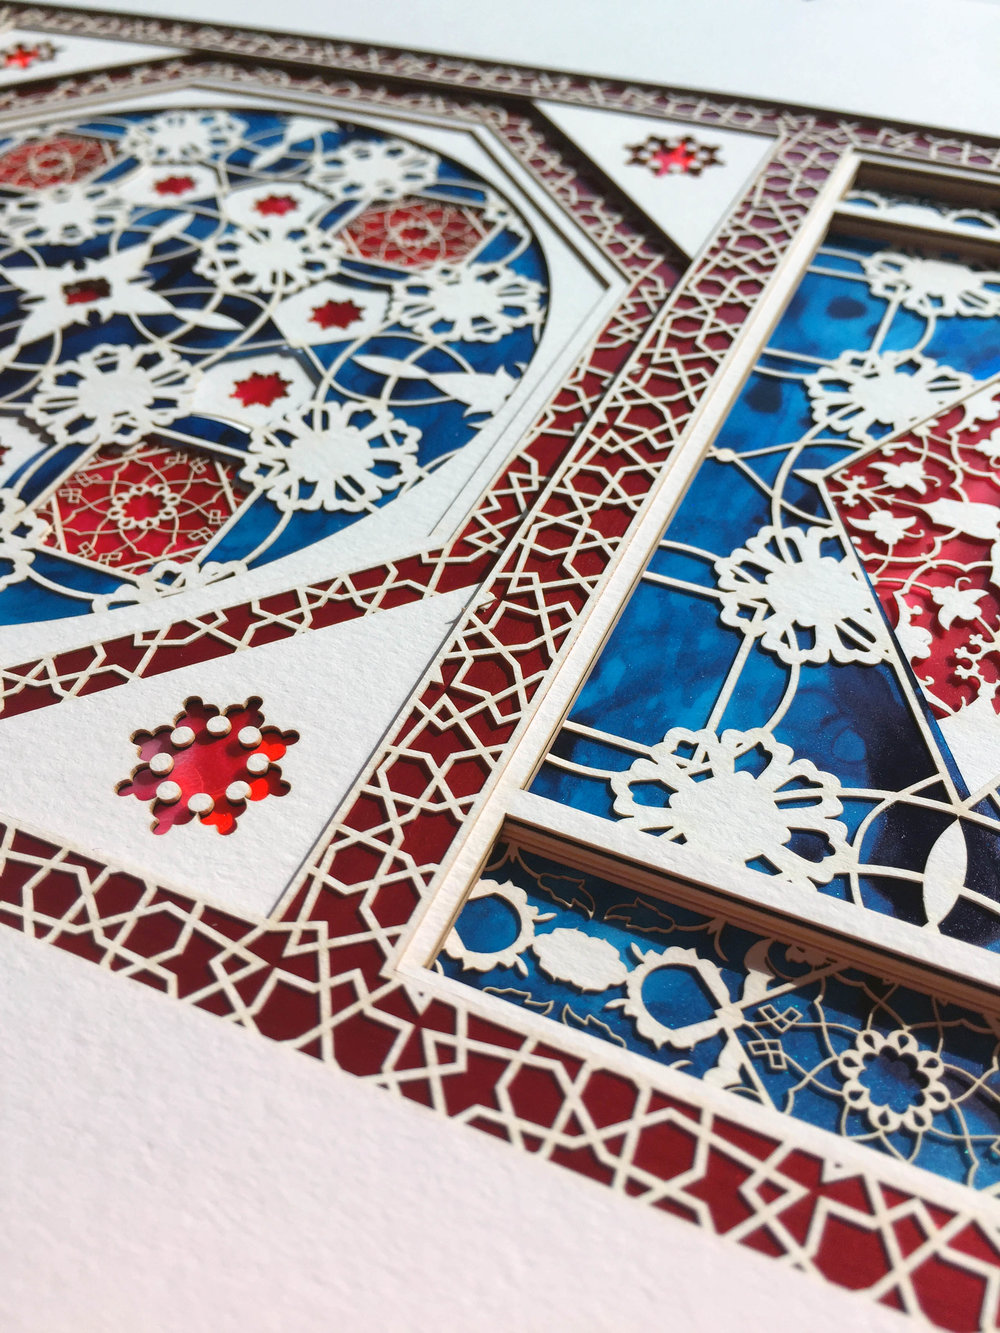 Detail from Inlays in Red and Blue